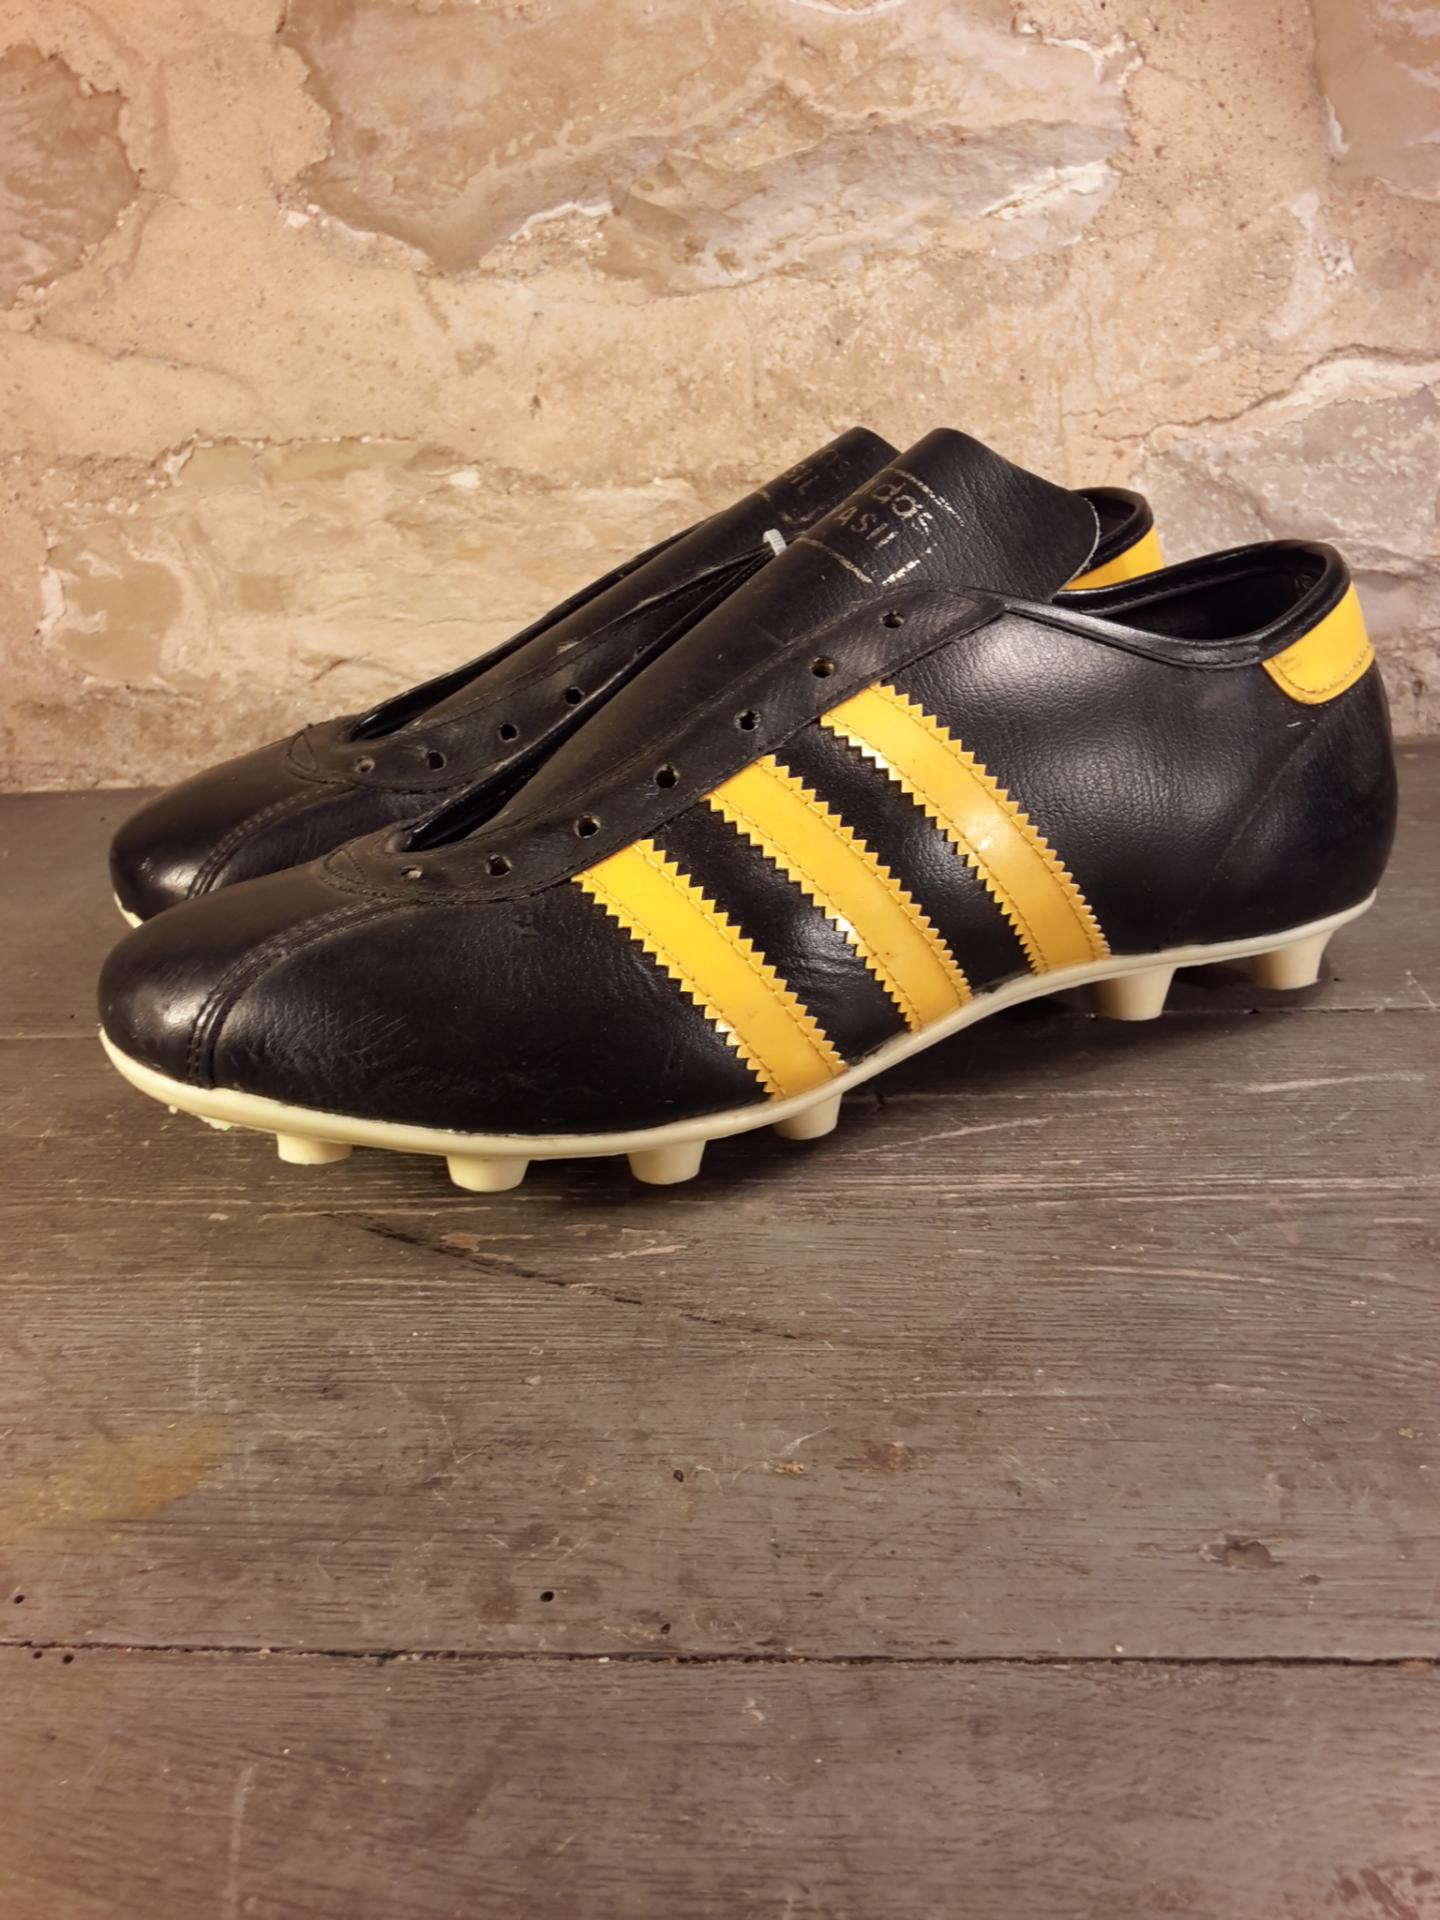 chaussures de football adidas brasil vintage. Black Bedroom Furniture Sets. Home Design Ideas